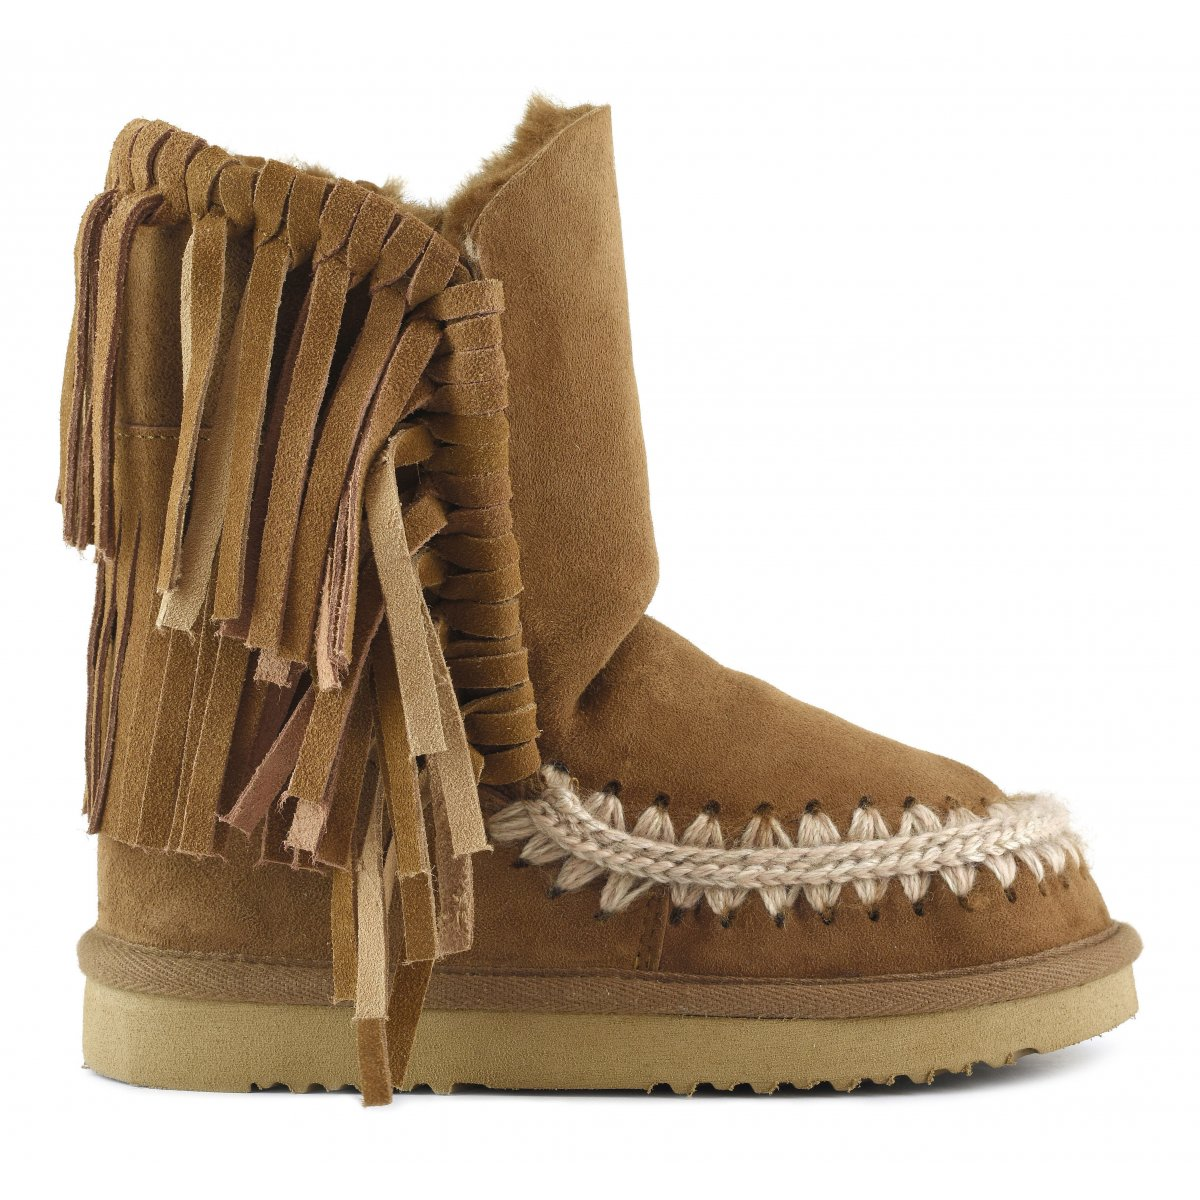 Mou Eskimo fringed boots cheap sale official cheap sale 2015 new cheap explore kDmSxrXuC